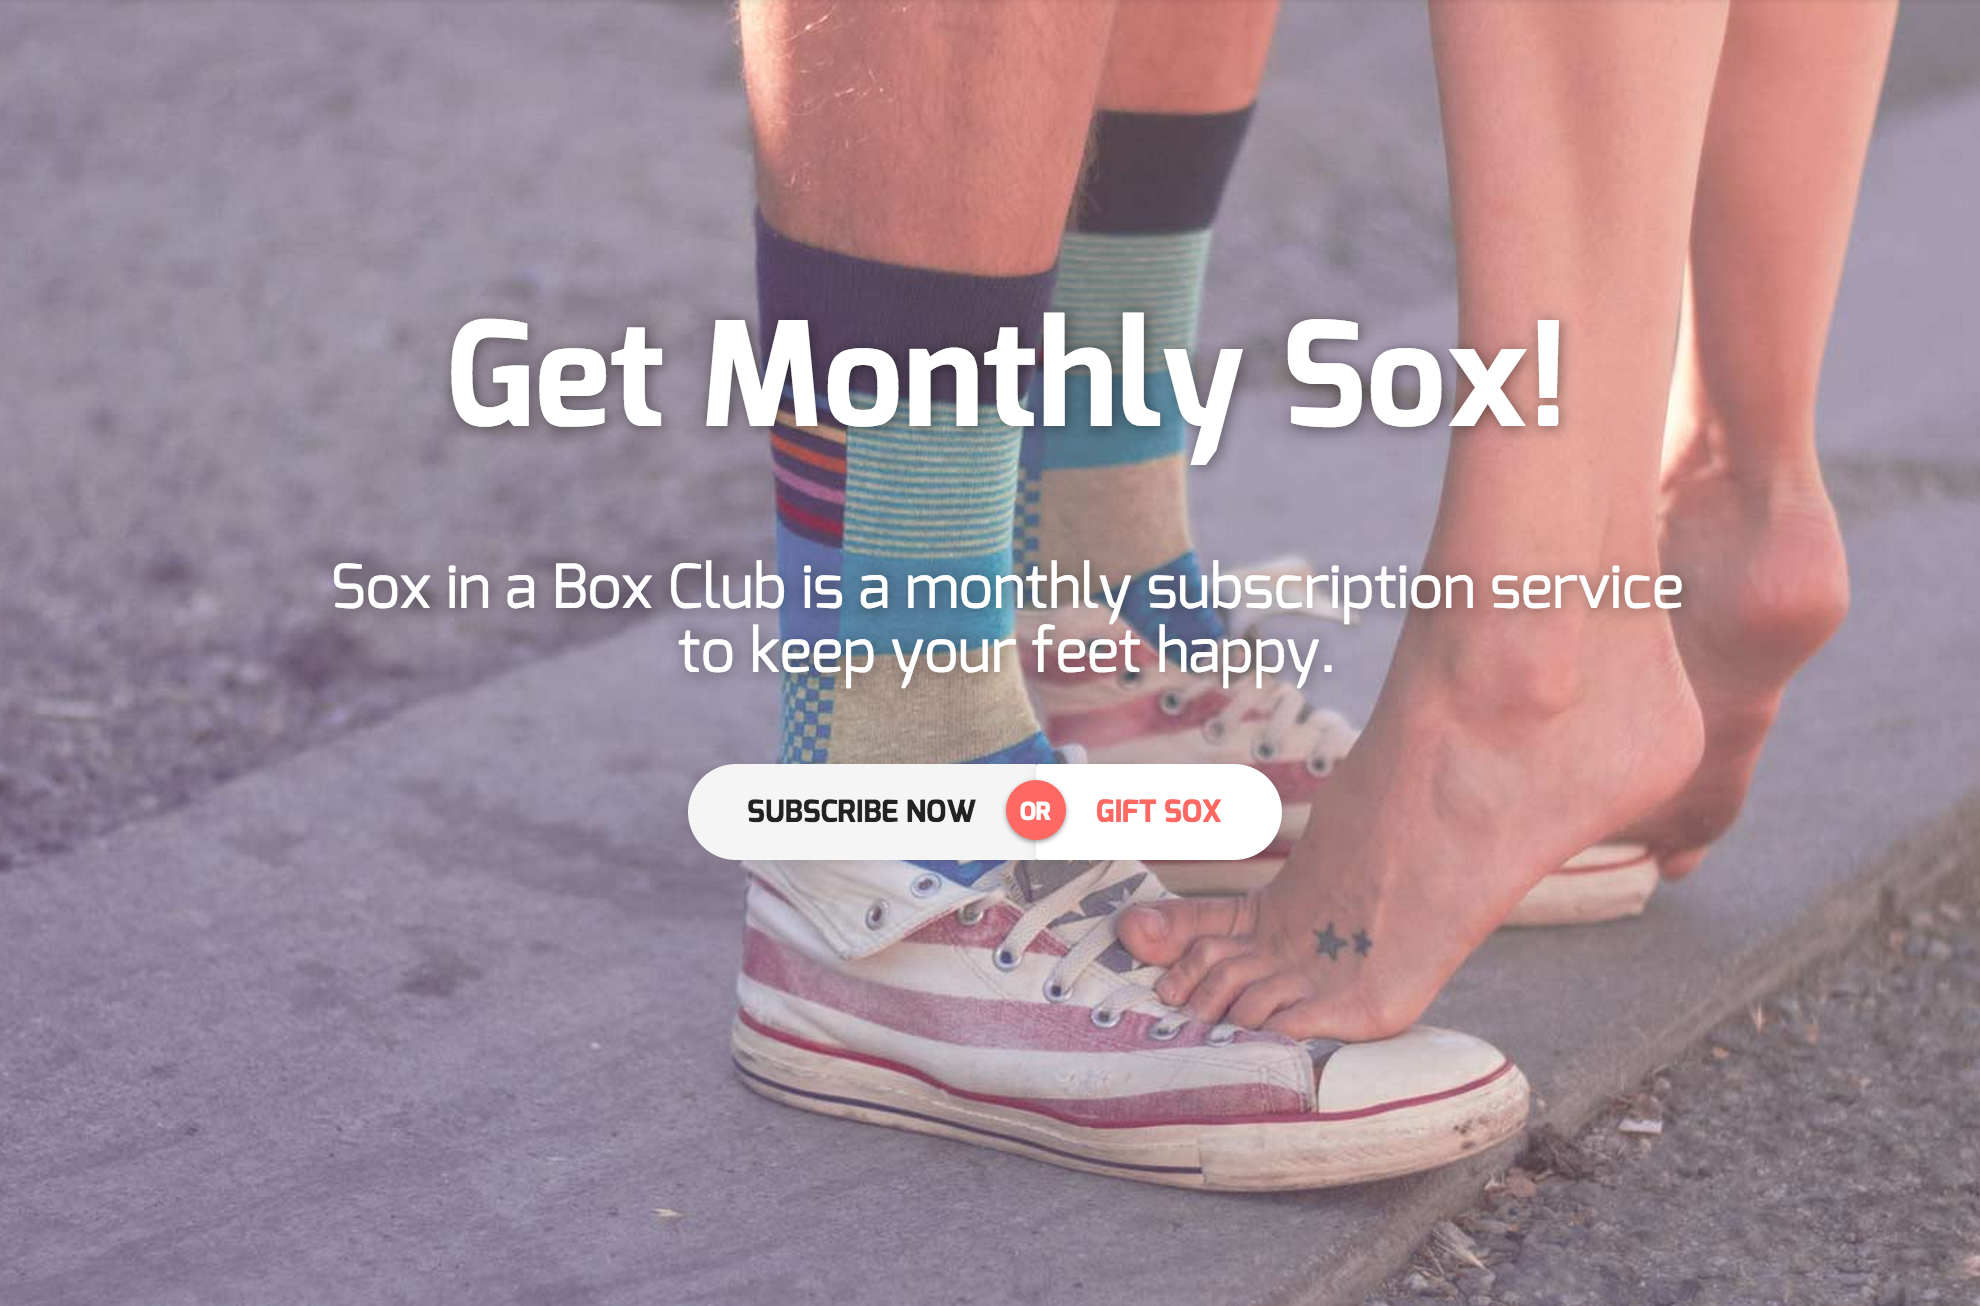 sox in a box club careers funding and management team angellist